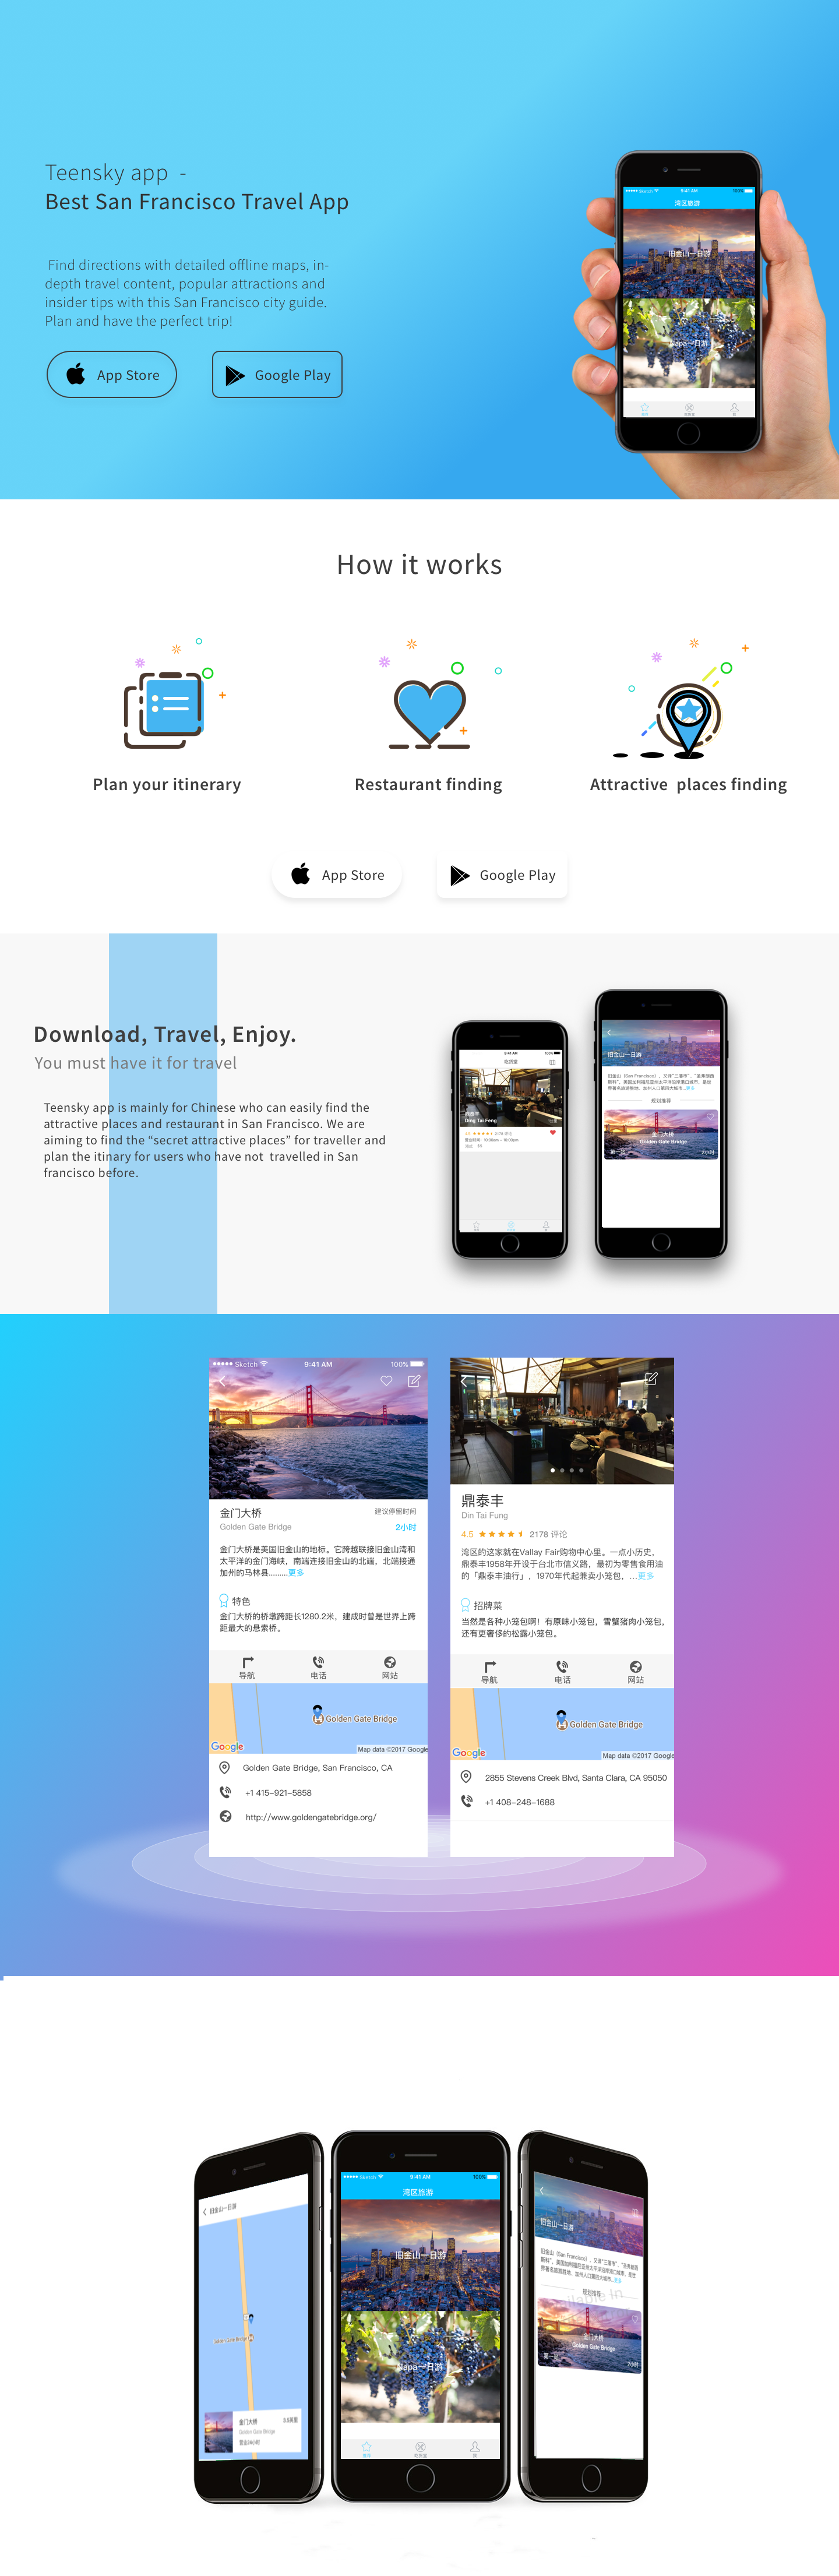 mobile app landing page by andrei dulcu.png